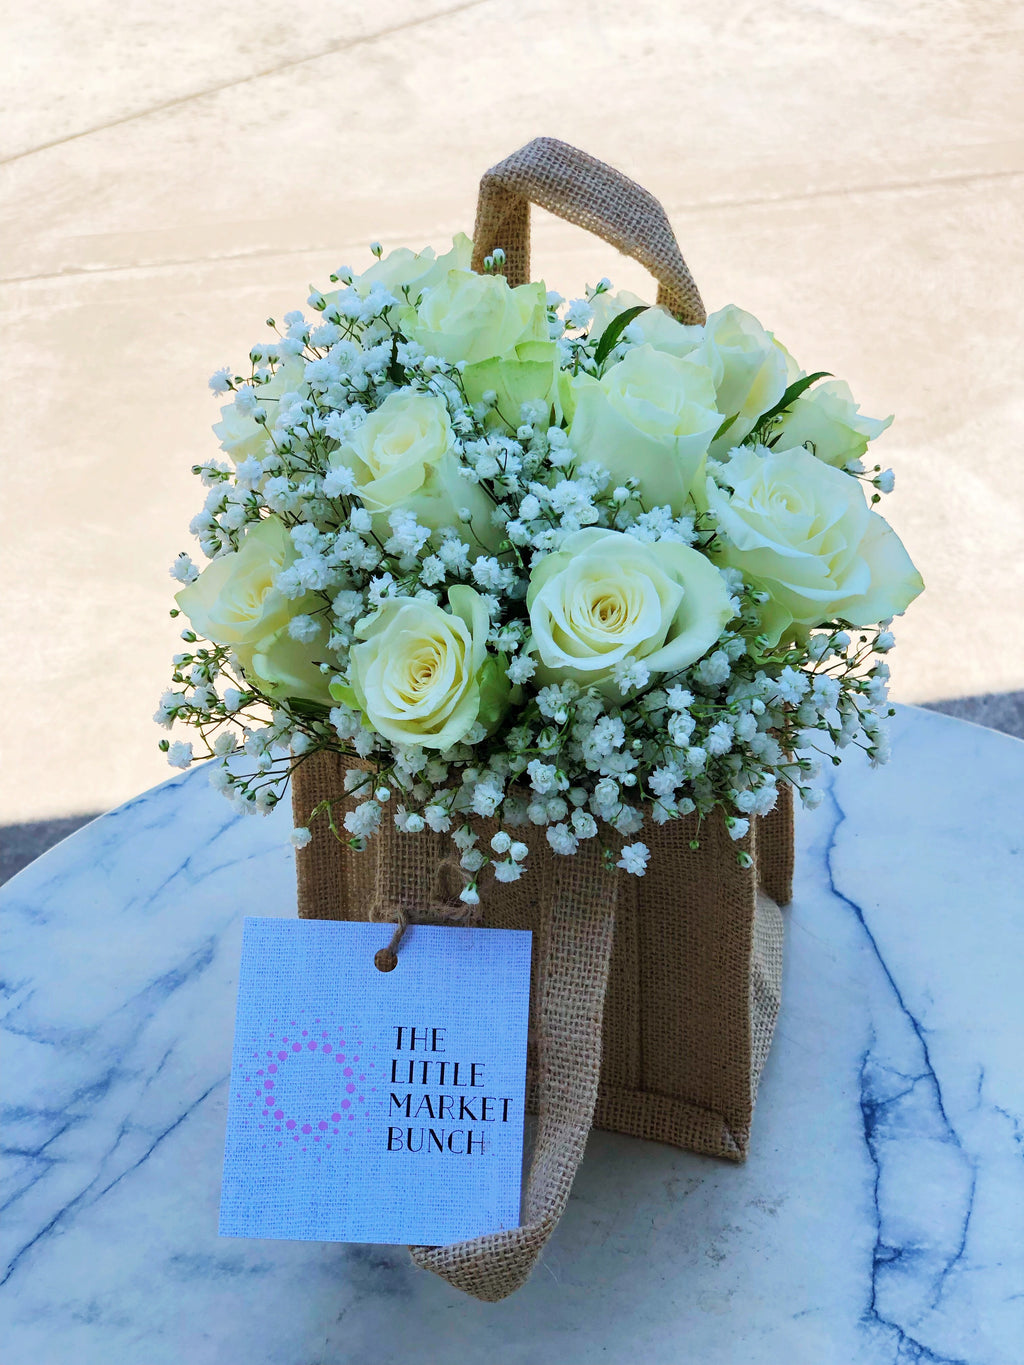 The little market bunch funeral Sympathy white Rose bag